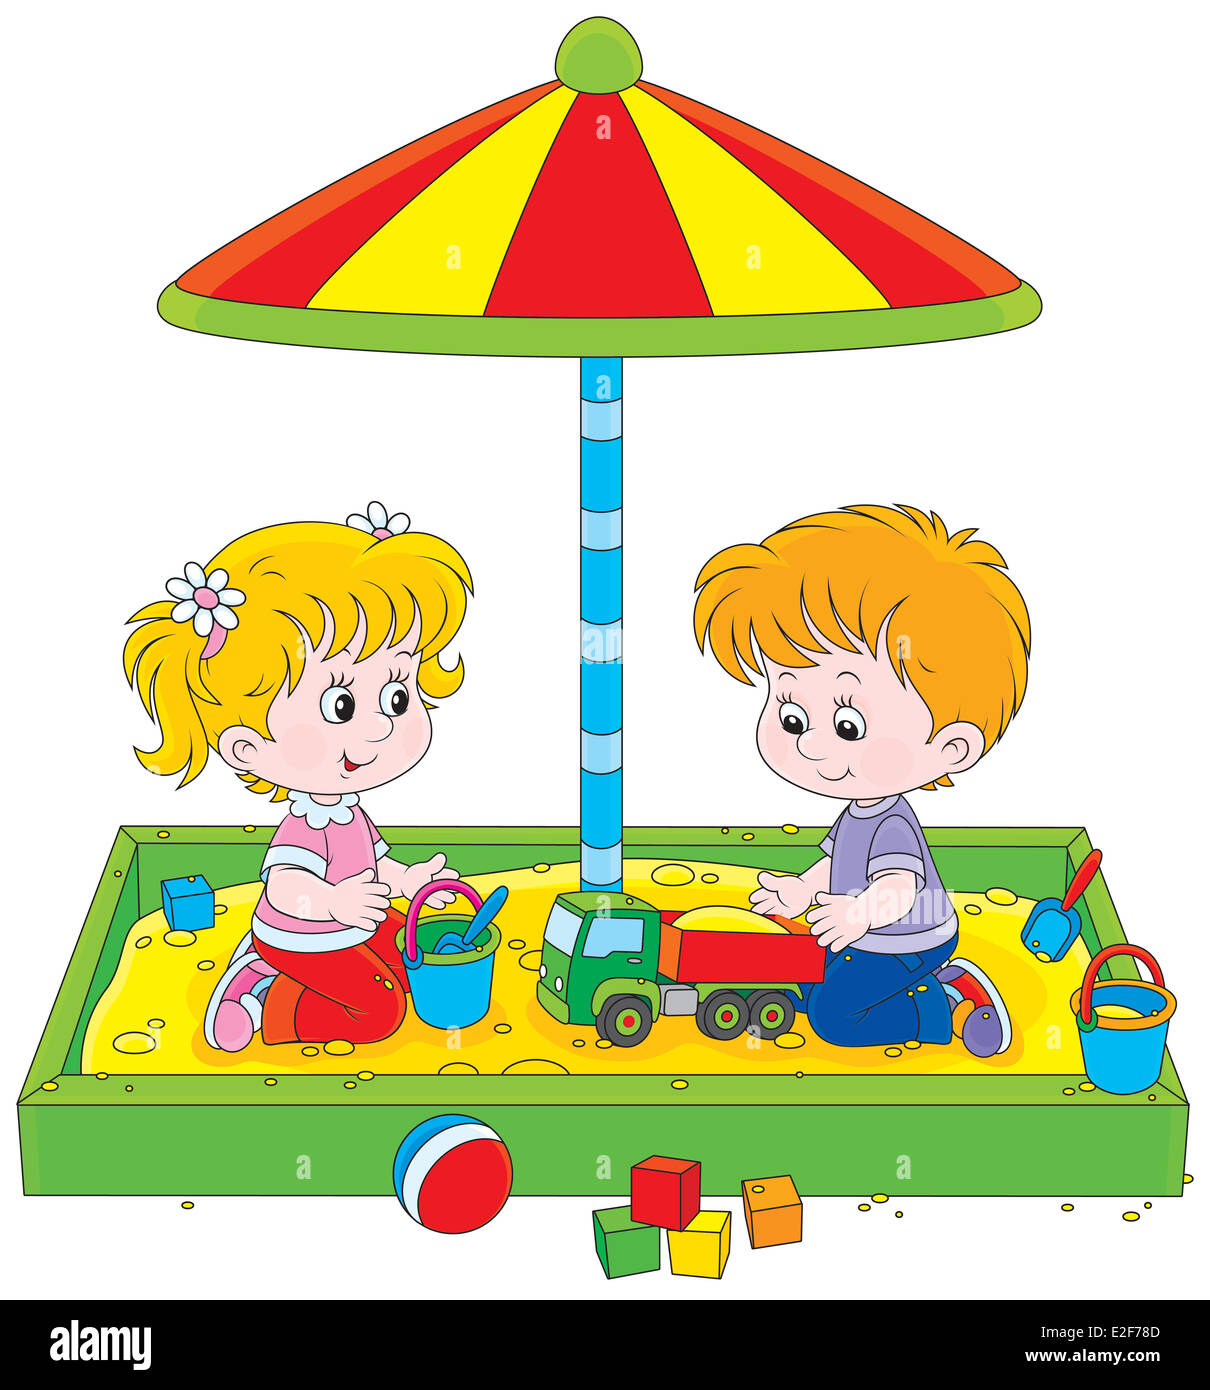 Little girl and boy playing in a sandpit on a children playground - Stock Image